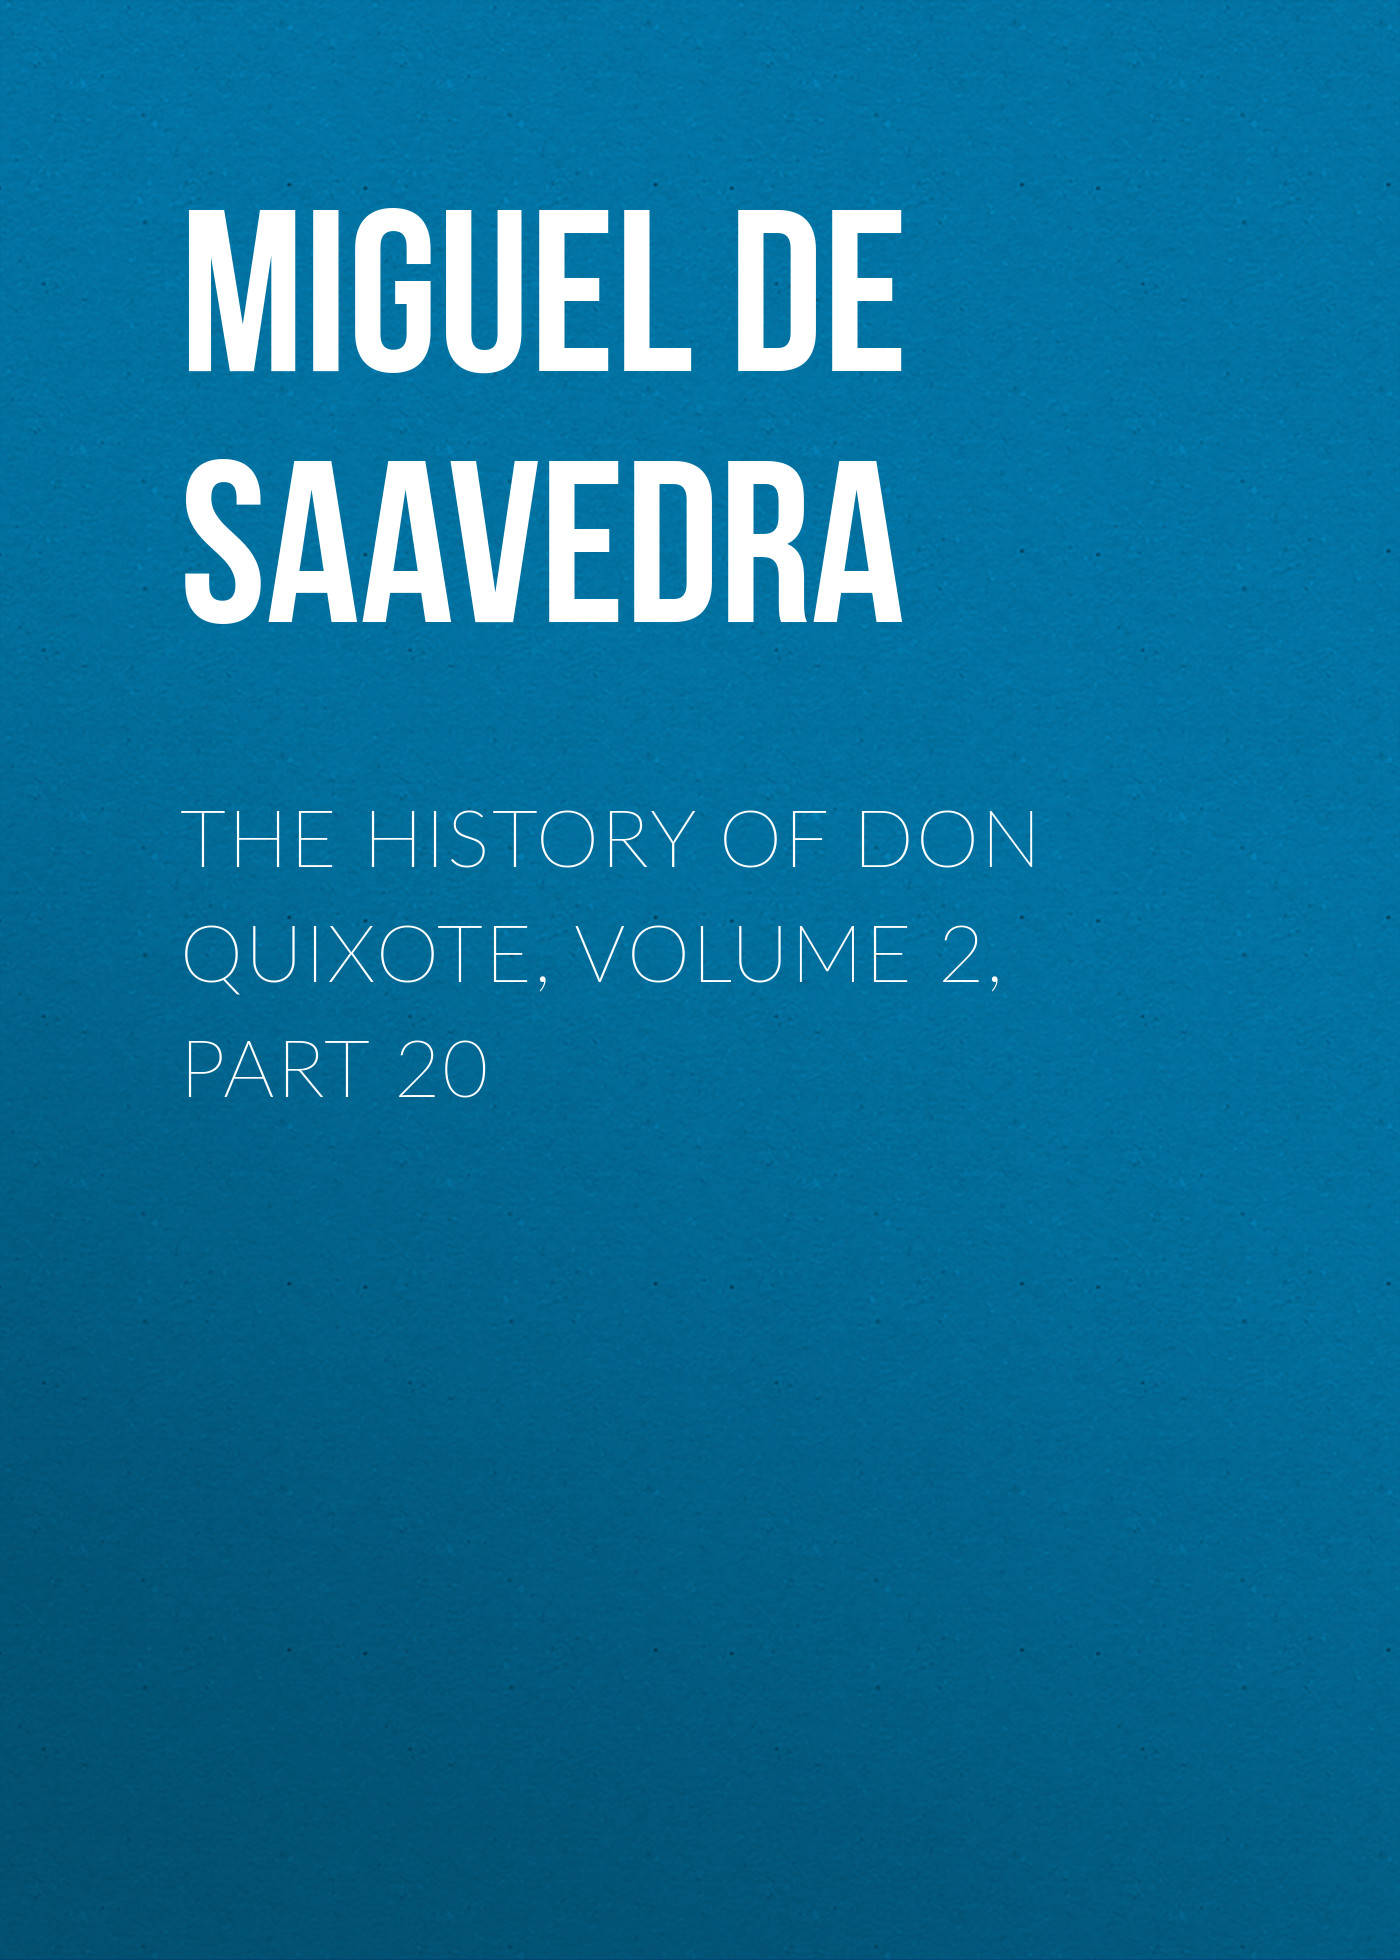 the history of don quixote volume 2 part 20